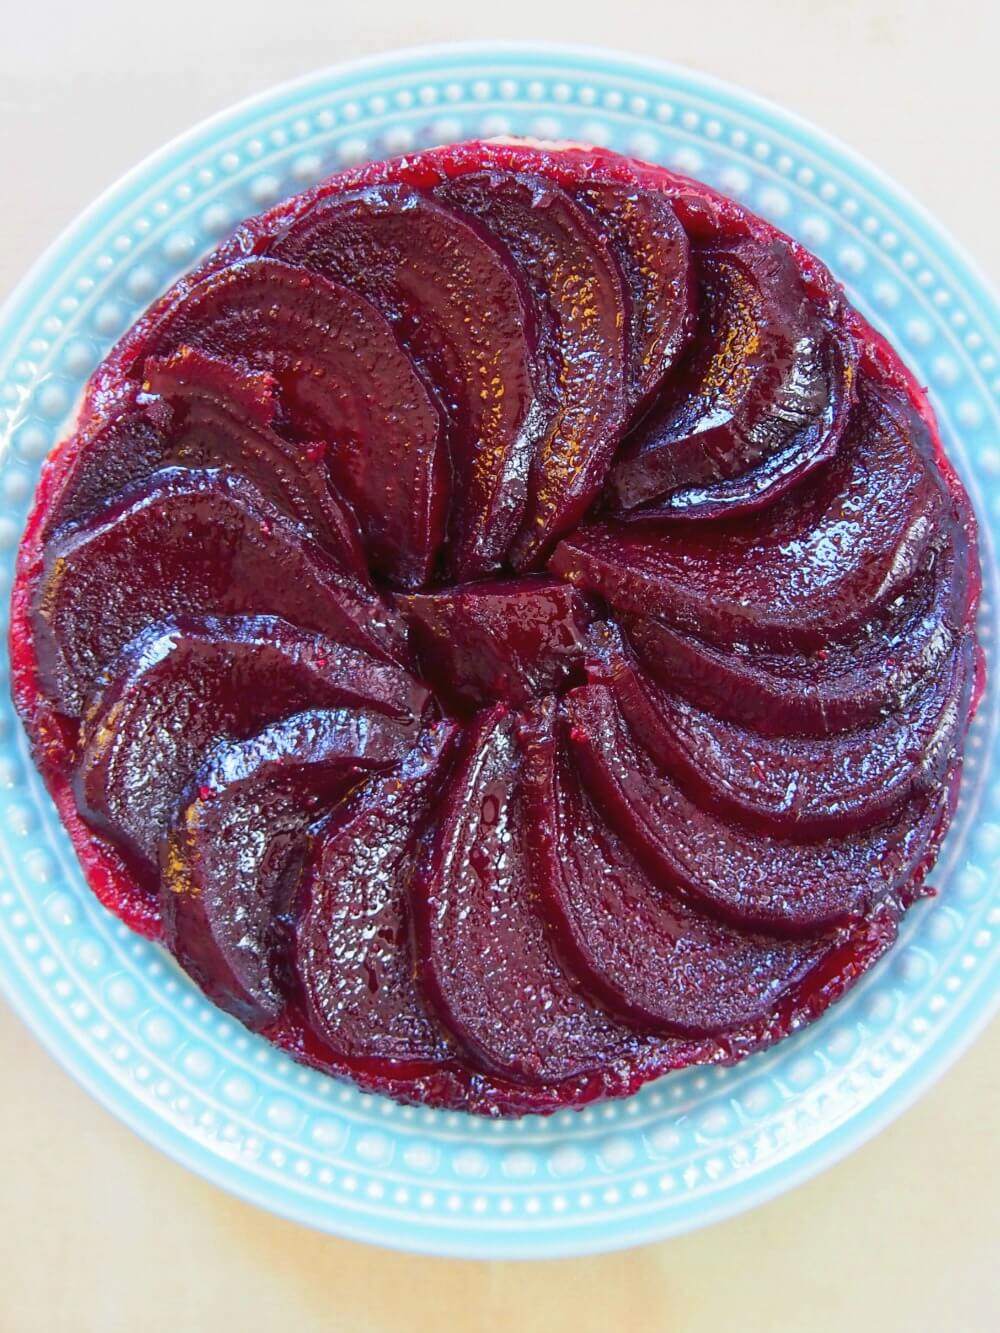 Beetroot tarte tatin makes an easy, tasty lunch or light meal. With a little goats cheese, the flavors are delicate & delicious, all wrapped in crisp pastry